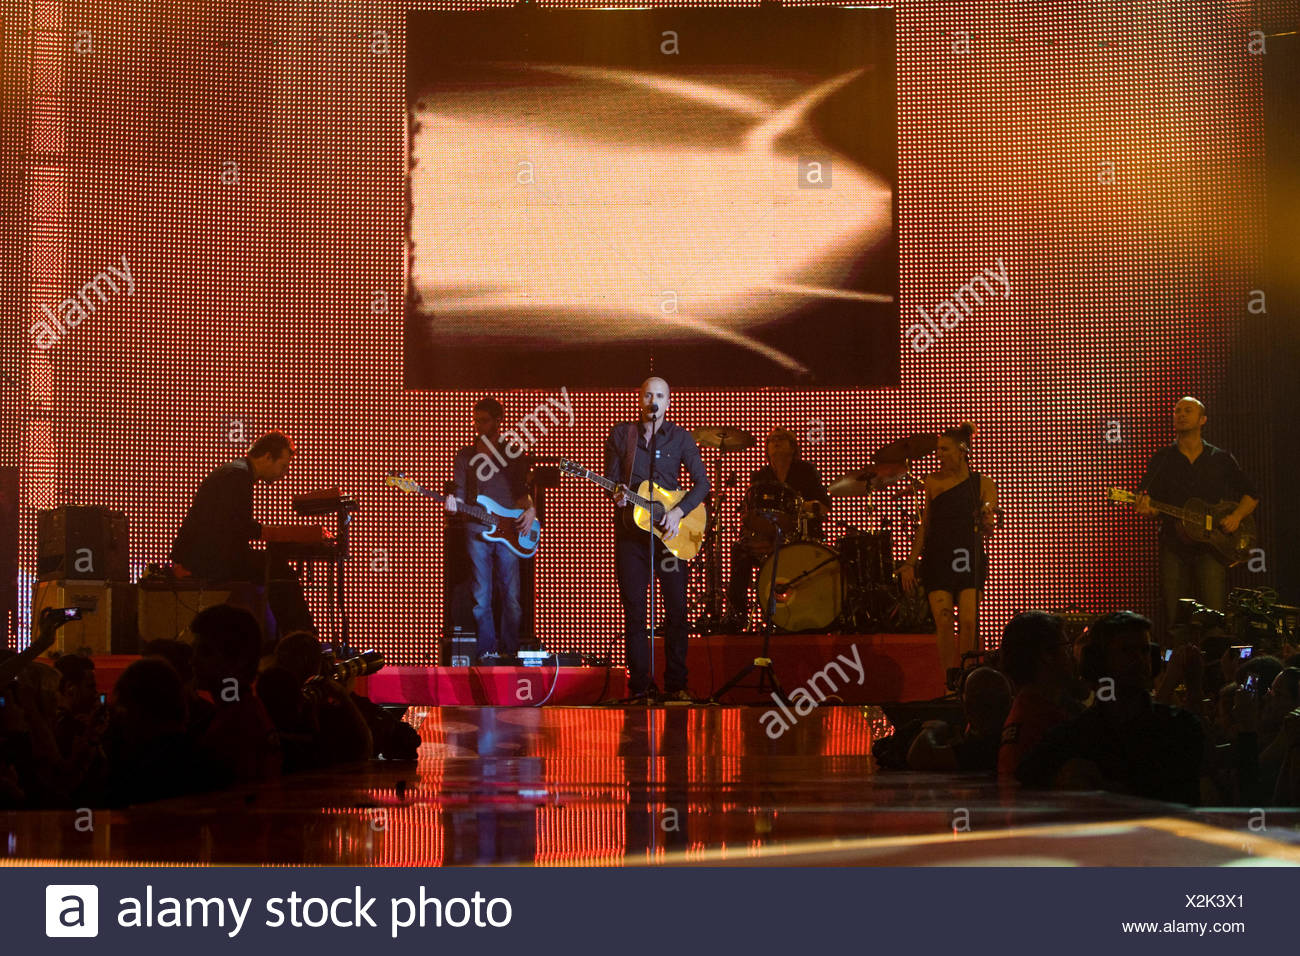 Belgian singer and songwriter Milow live at the Energy Stars For Free event at the Hallenstadion Oerlikon concert hall, Zurich - Stock Image